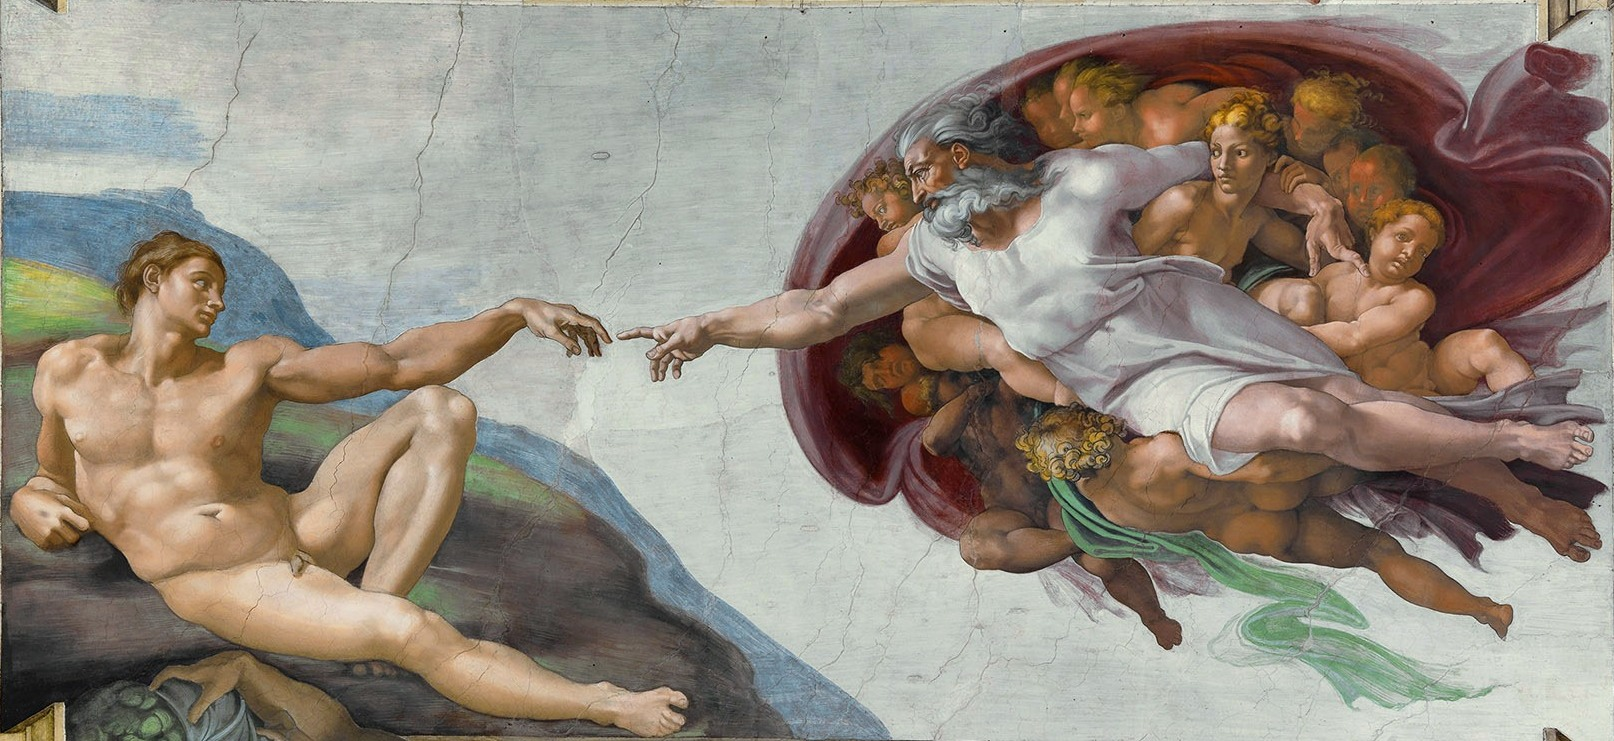 The Creation of Adam